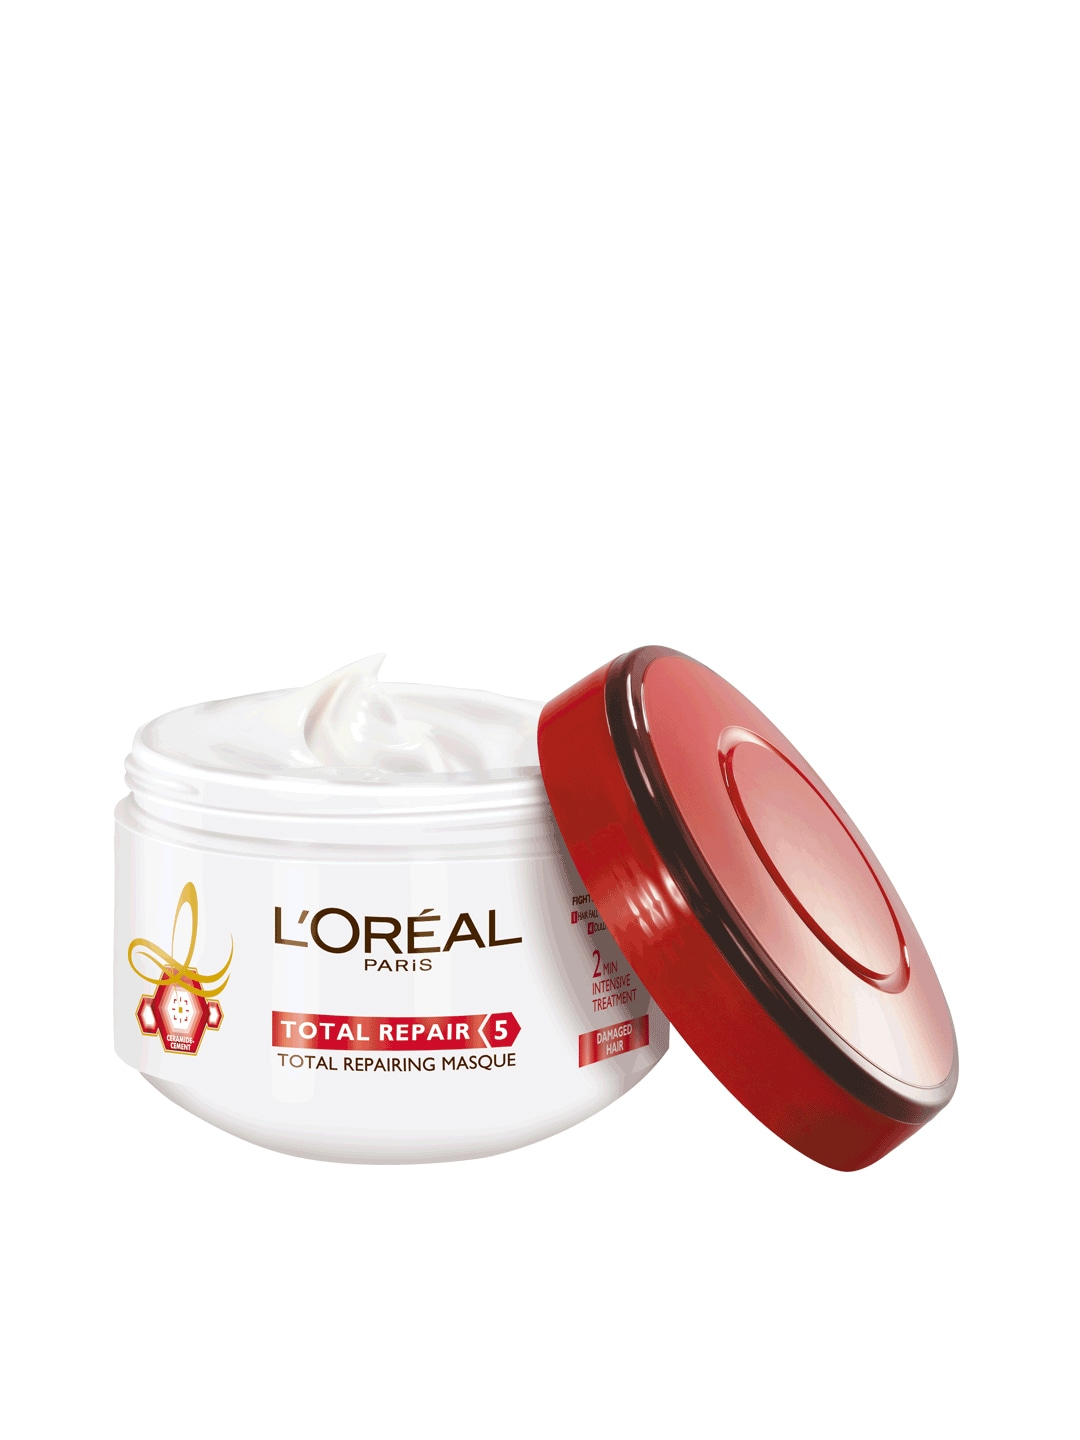 LOreal Paris Total Repair 5 Hair Masque image